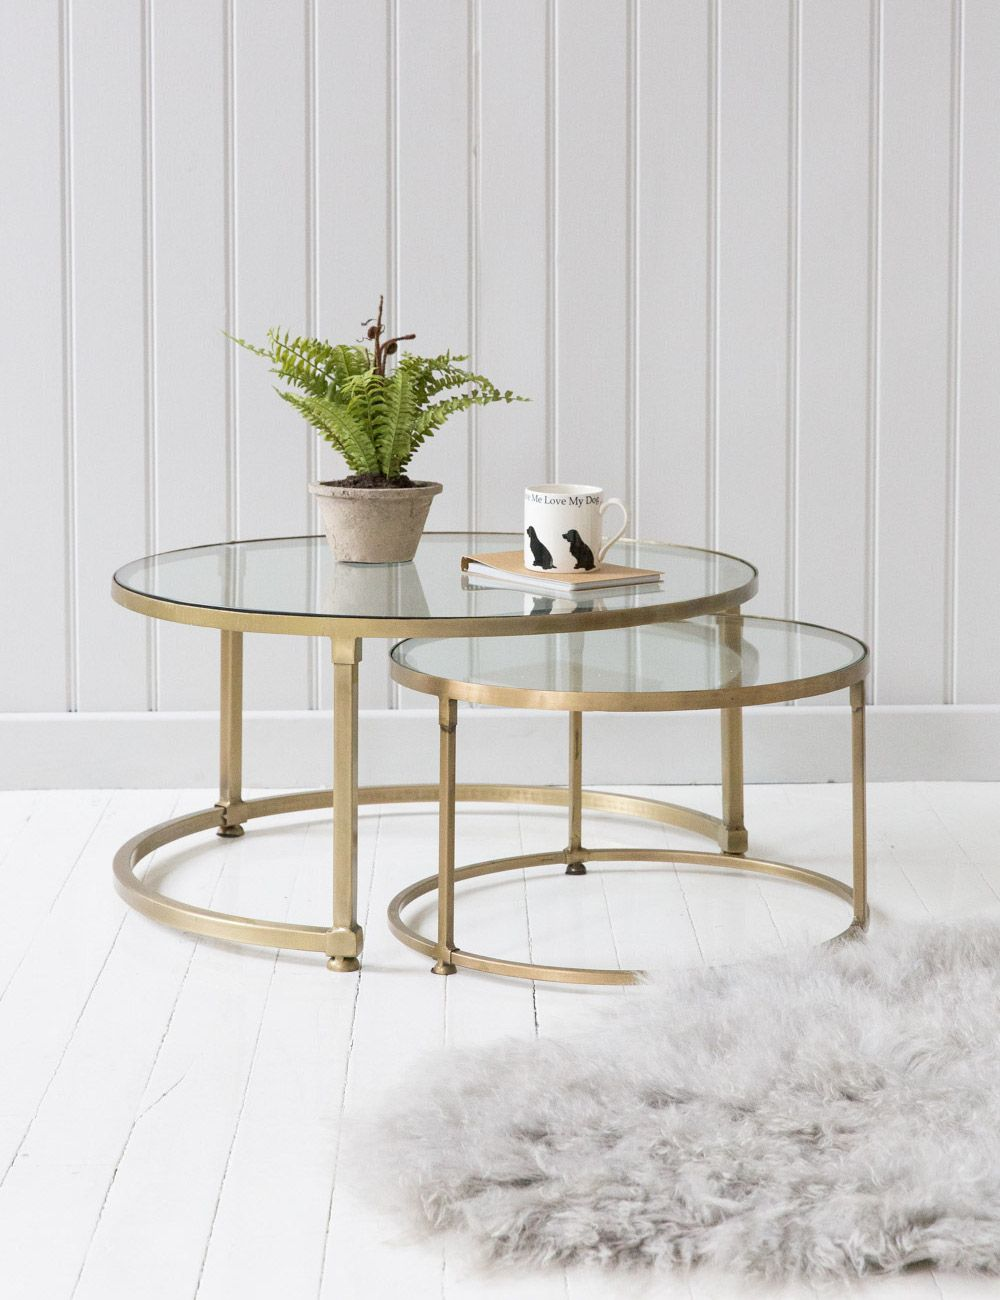 Coco nesting round glass coffee tables round glass for Round coffee table sets